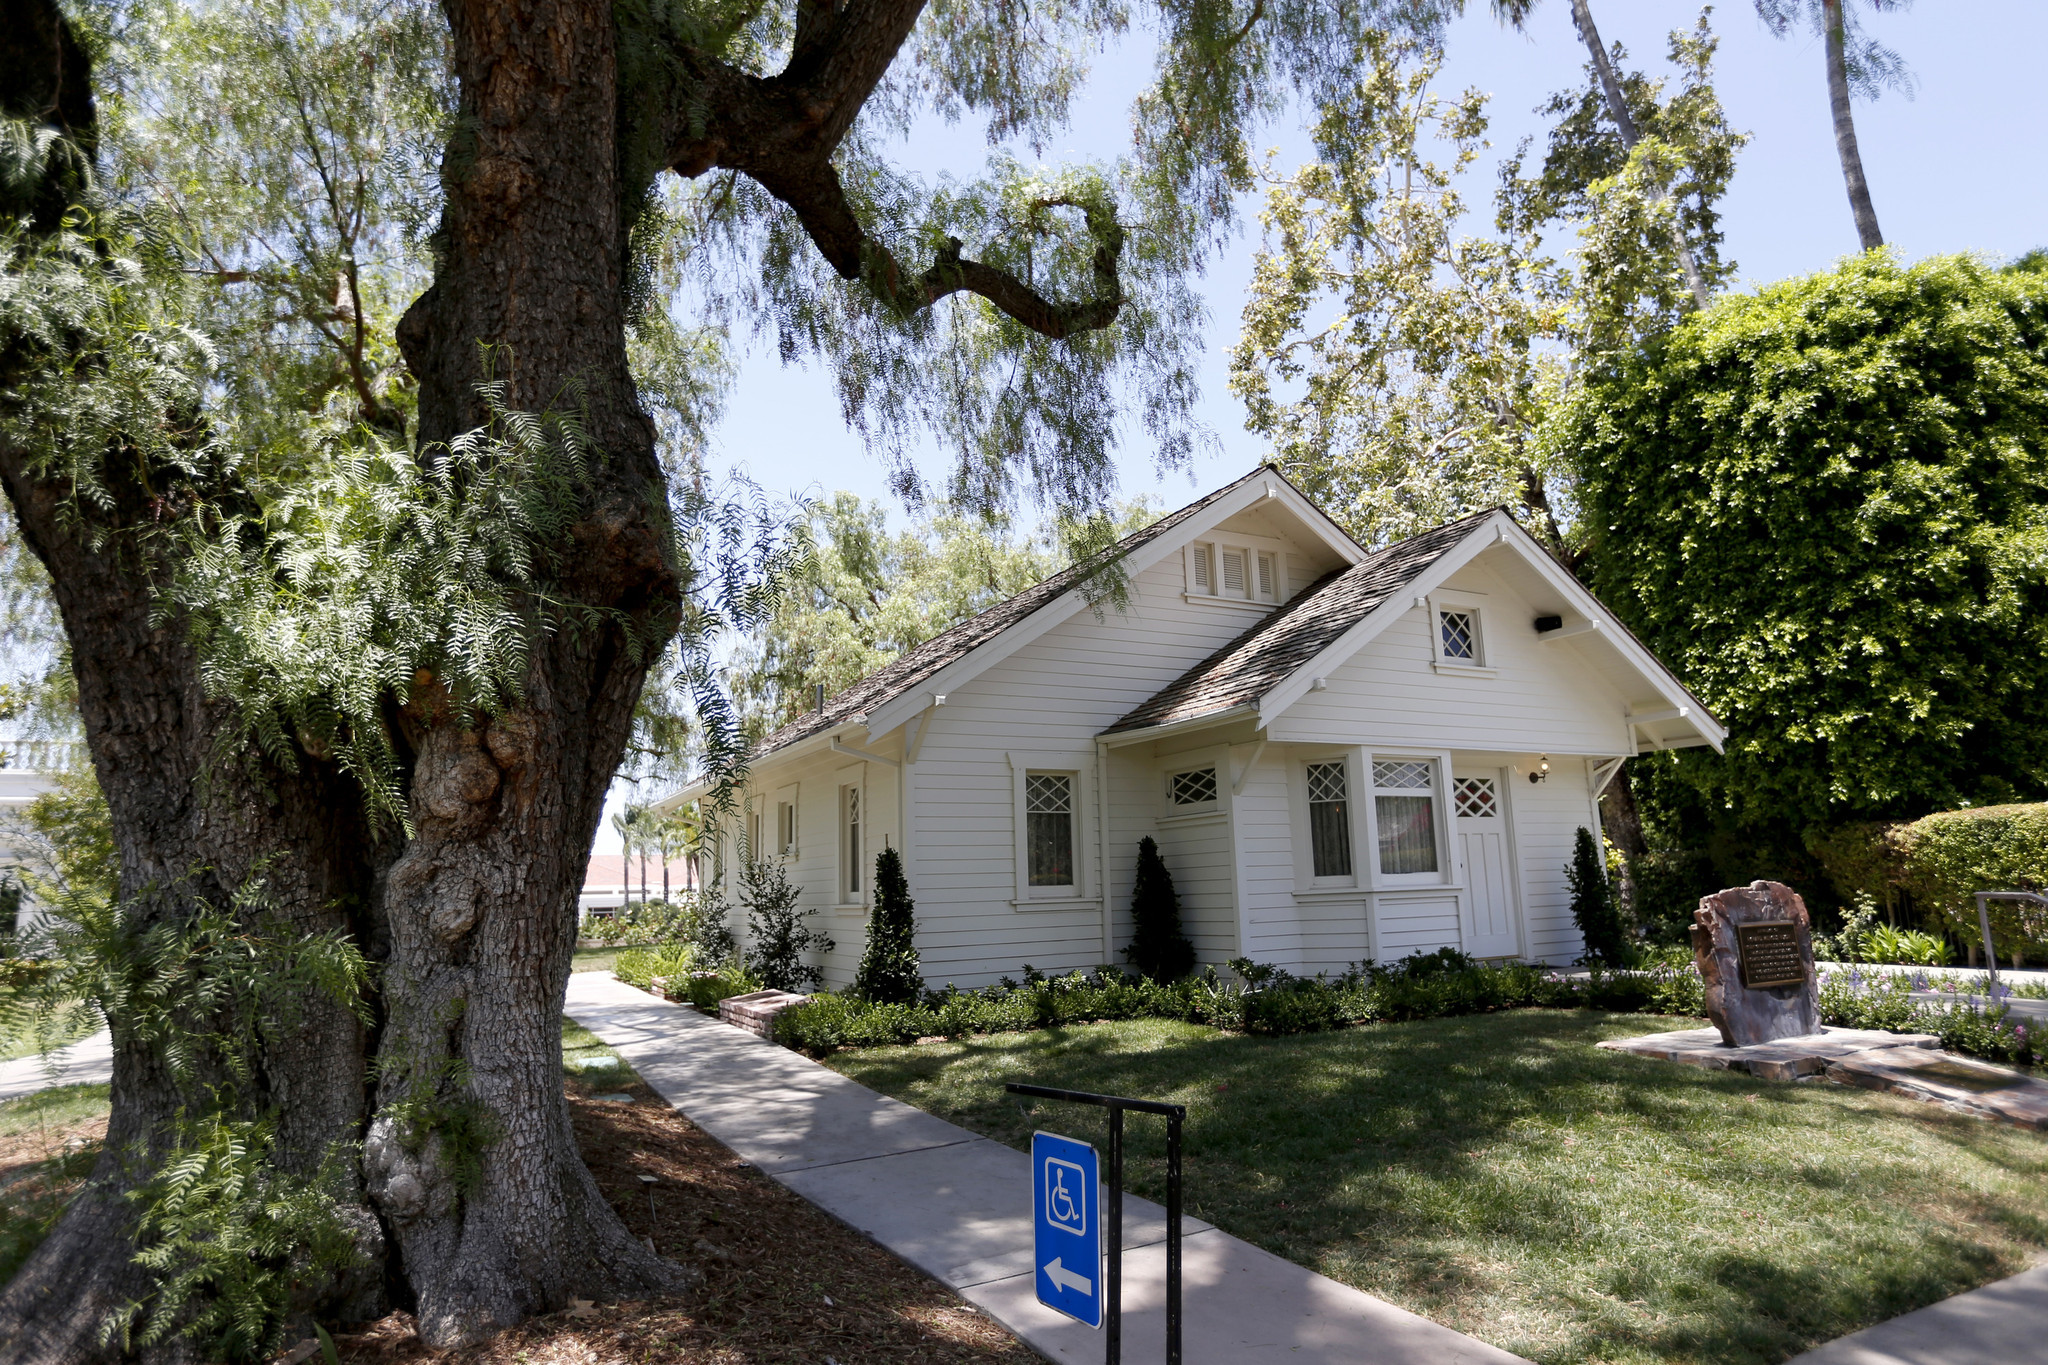 The Richard Nixon Birthplace, where Nixon was born and lived from 1913 to 1922, is located on the grounds of the new Richard Nixon Library and Museum.